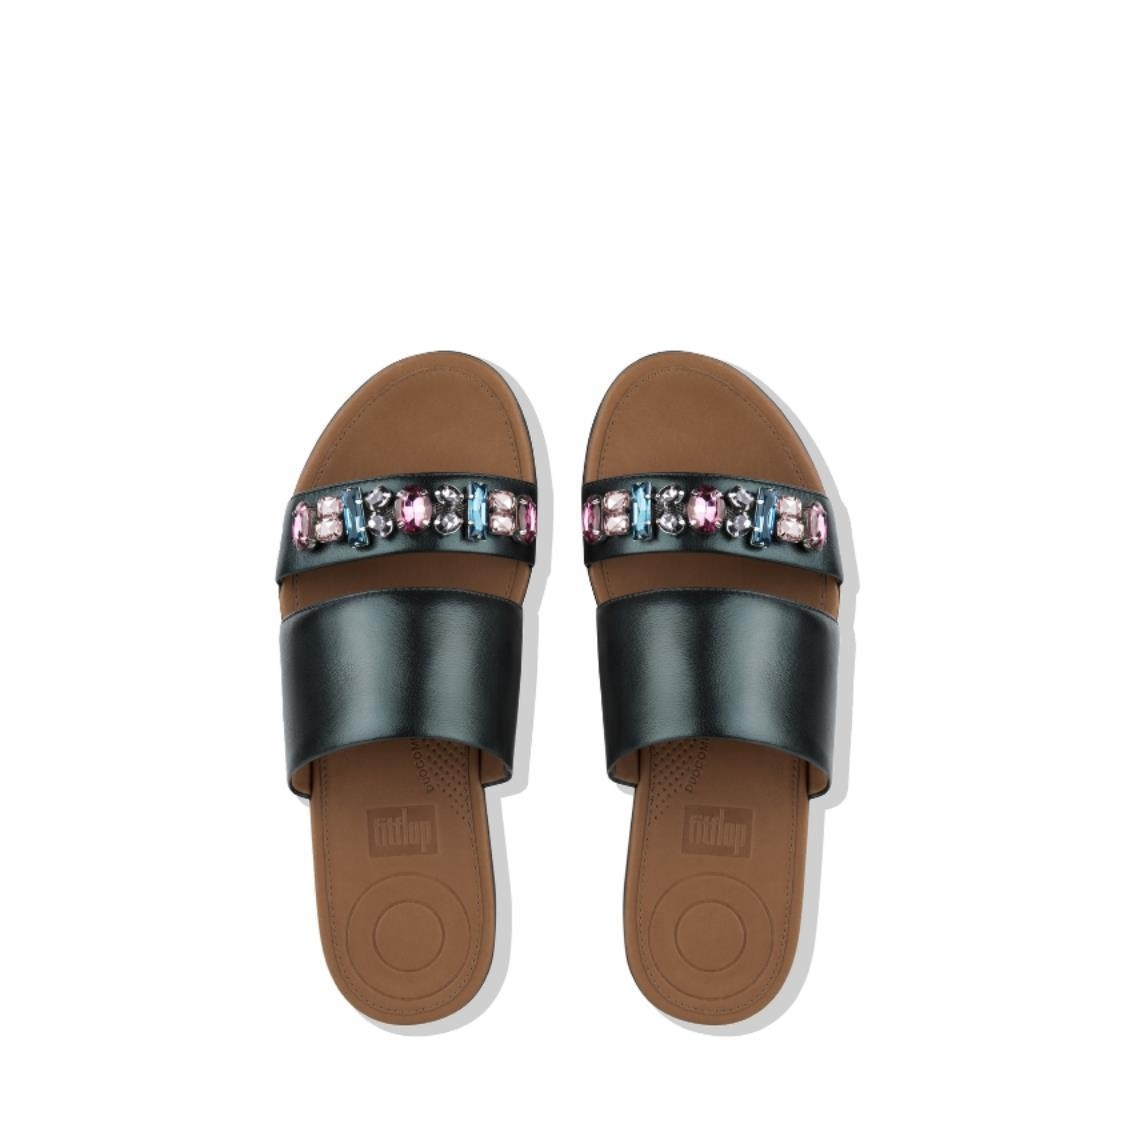 Delta Bejewelled Leather Slides Galactic Green